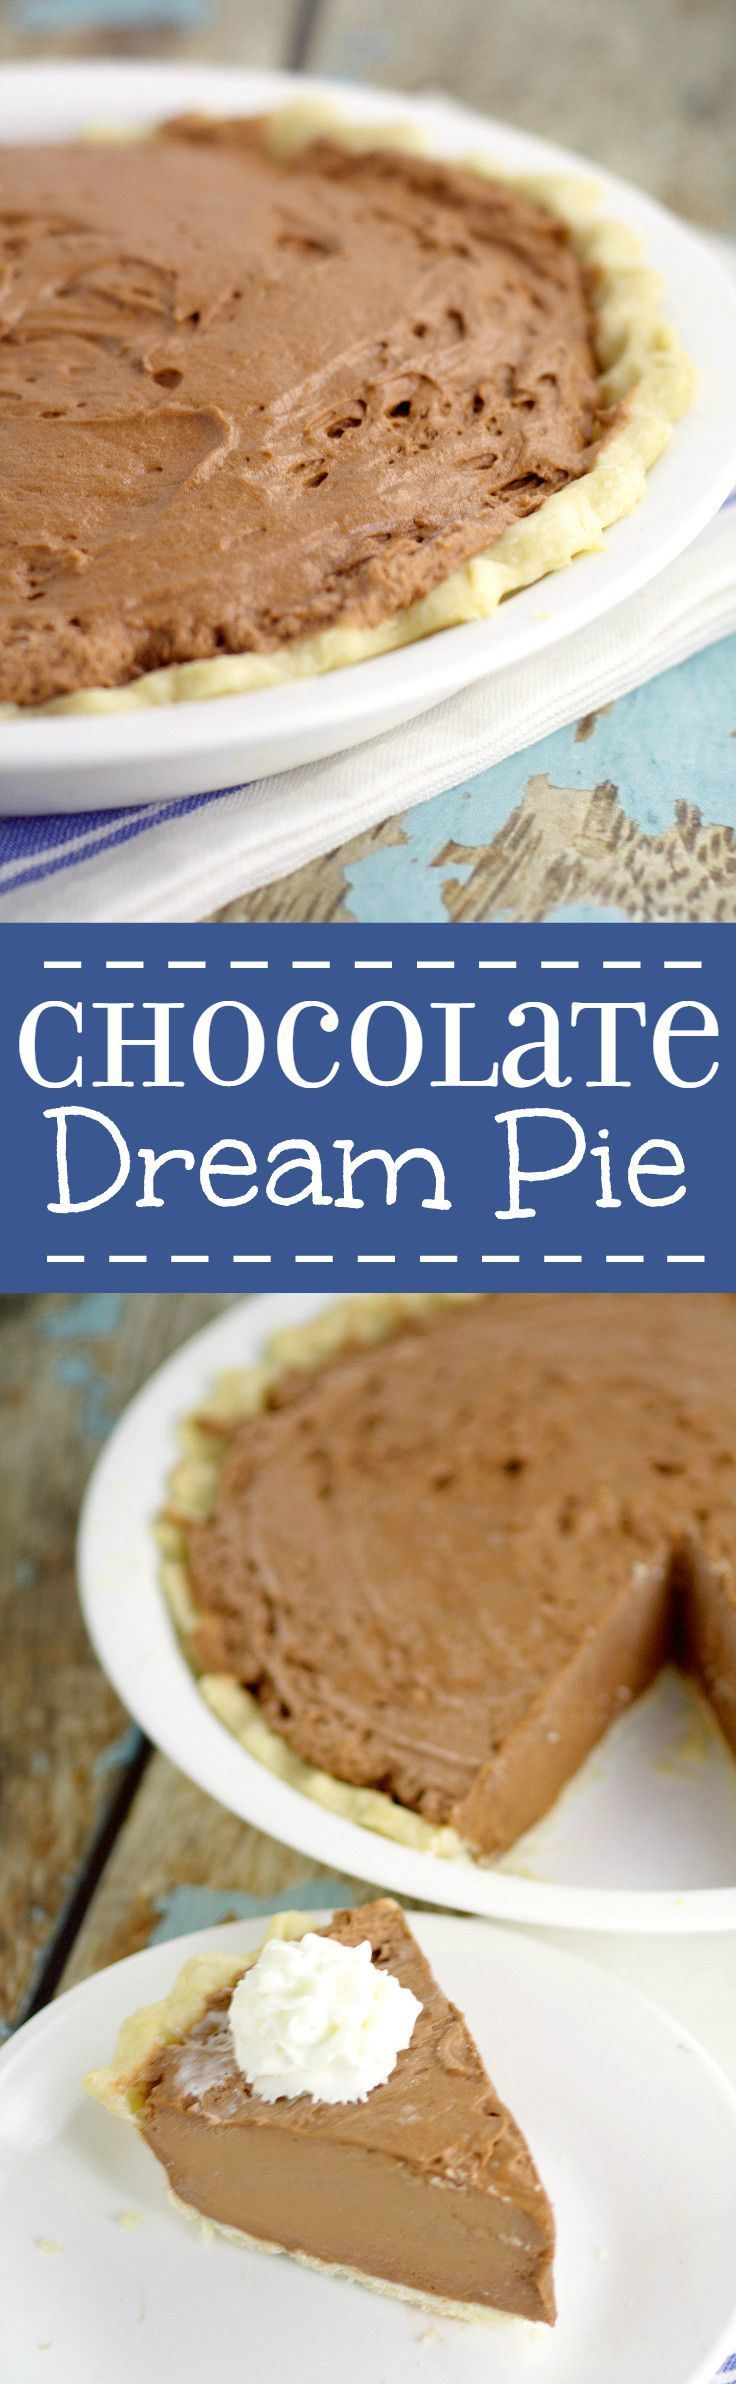 Best 25+ Homemade chocolate pie ideas on Pinterest | Chocolate pie ...